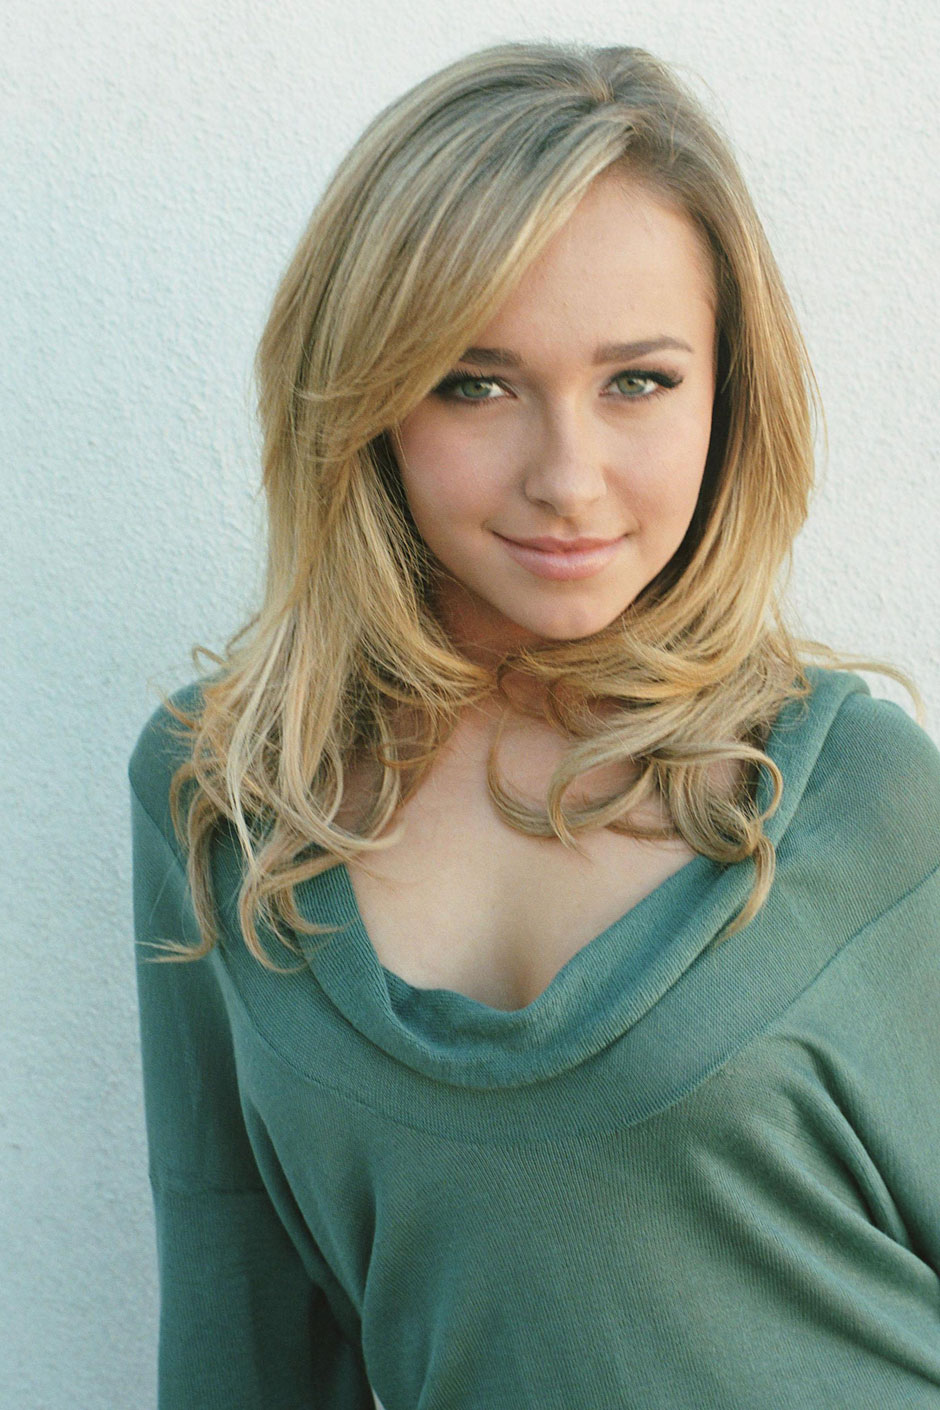 hayden panettiere tryhayden panettiere daughter, hayden panettiere vk, hayden panettiere 2017, hayden panettiere 2016, hayden panettiere klitschko, hayden panettiere husband, hayden panettiere wake up call, hayden panettiere инстаграм, hayden panettiere until dawn, hayden panettiere кинопоиск, hayden panettiere рост, hayden panettiere vitali klitschko, hayden panettiere try, hayden panettiere i still believe, hayden panettiere фильмы, hayden panettiere gif hunt, hayden panettiere – try перевод, hayden panettiere i still believe mp3, hayden panettiere i still believe минус, hayden panettiere site